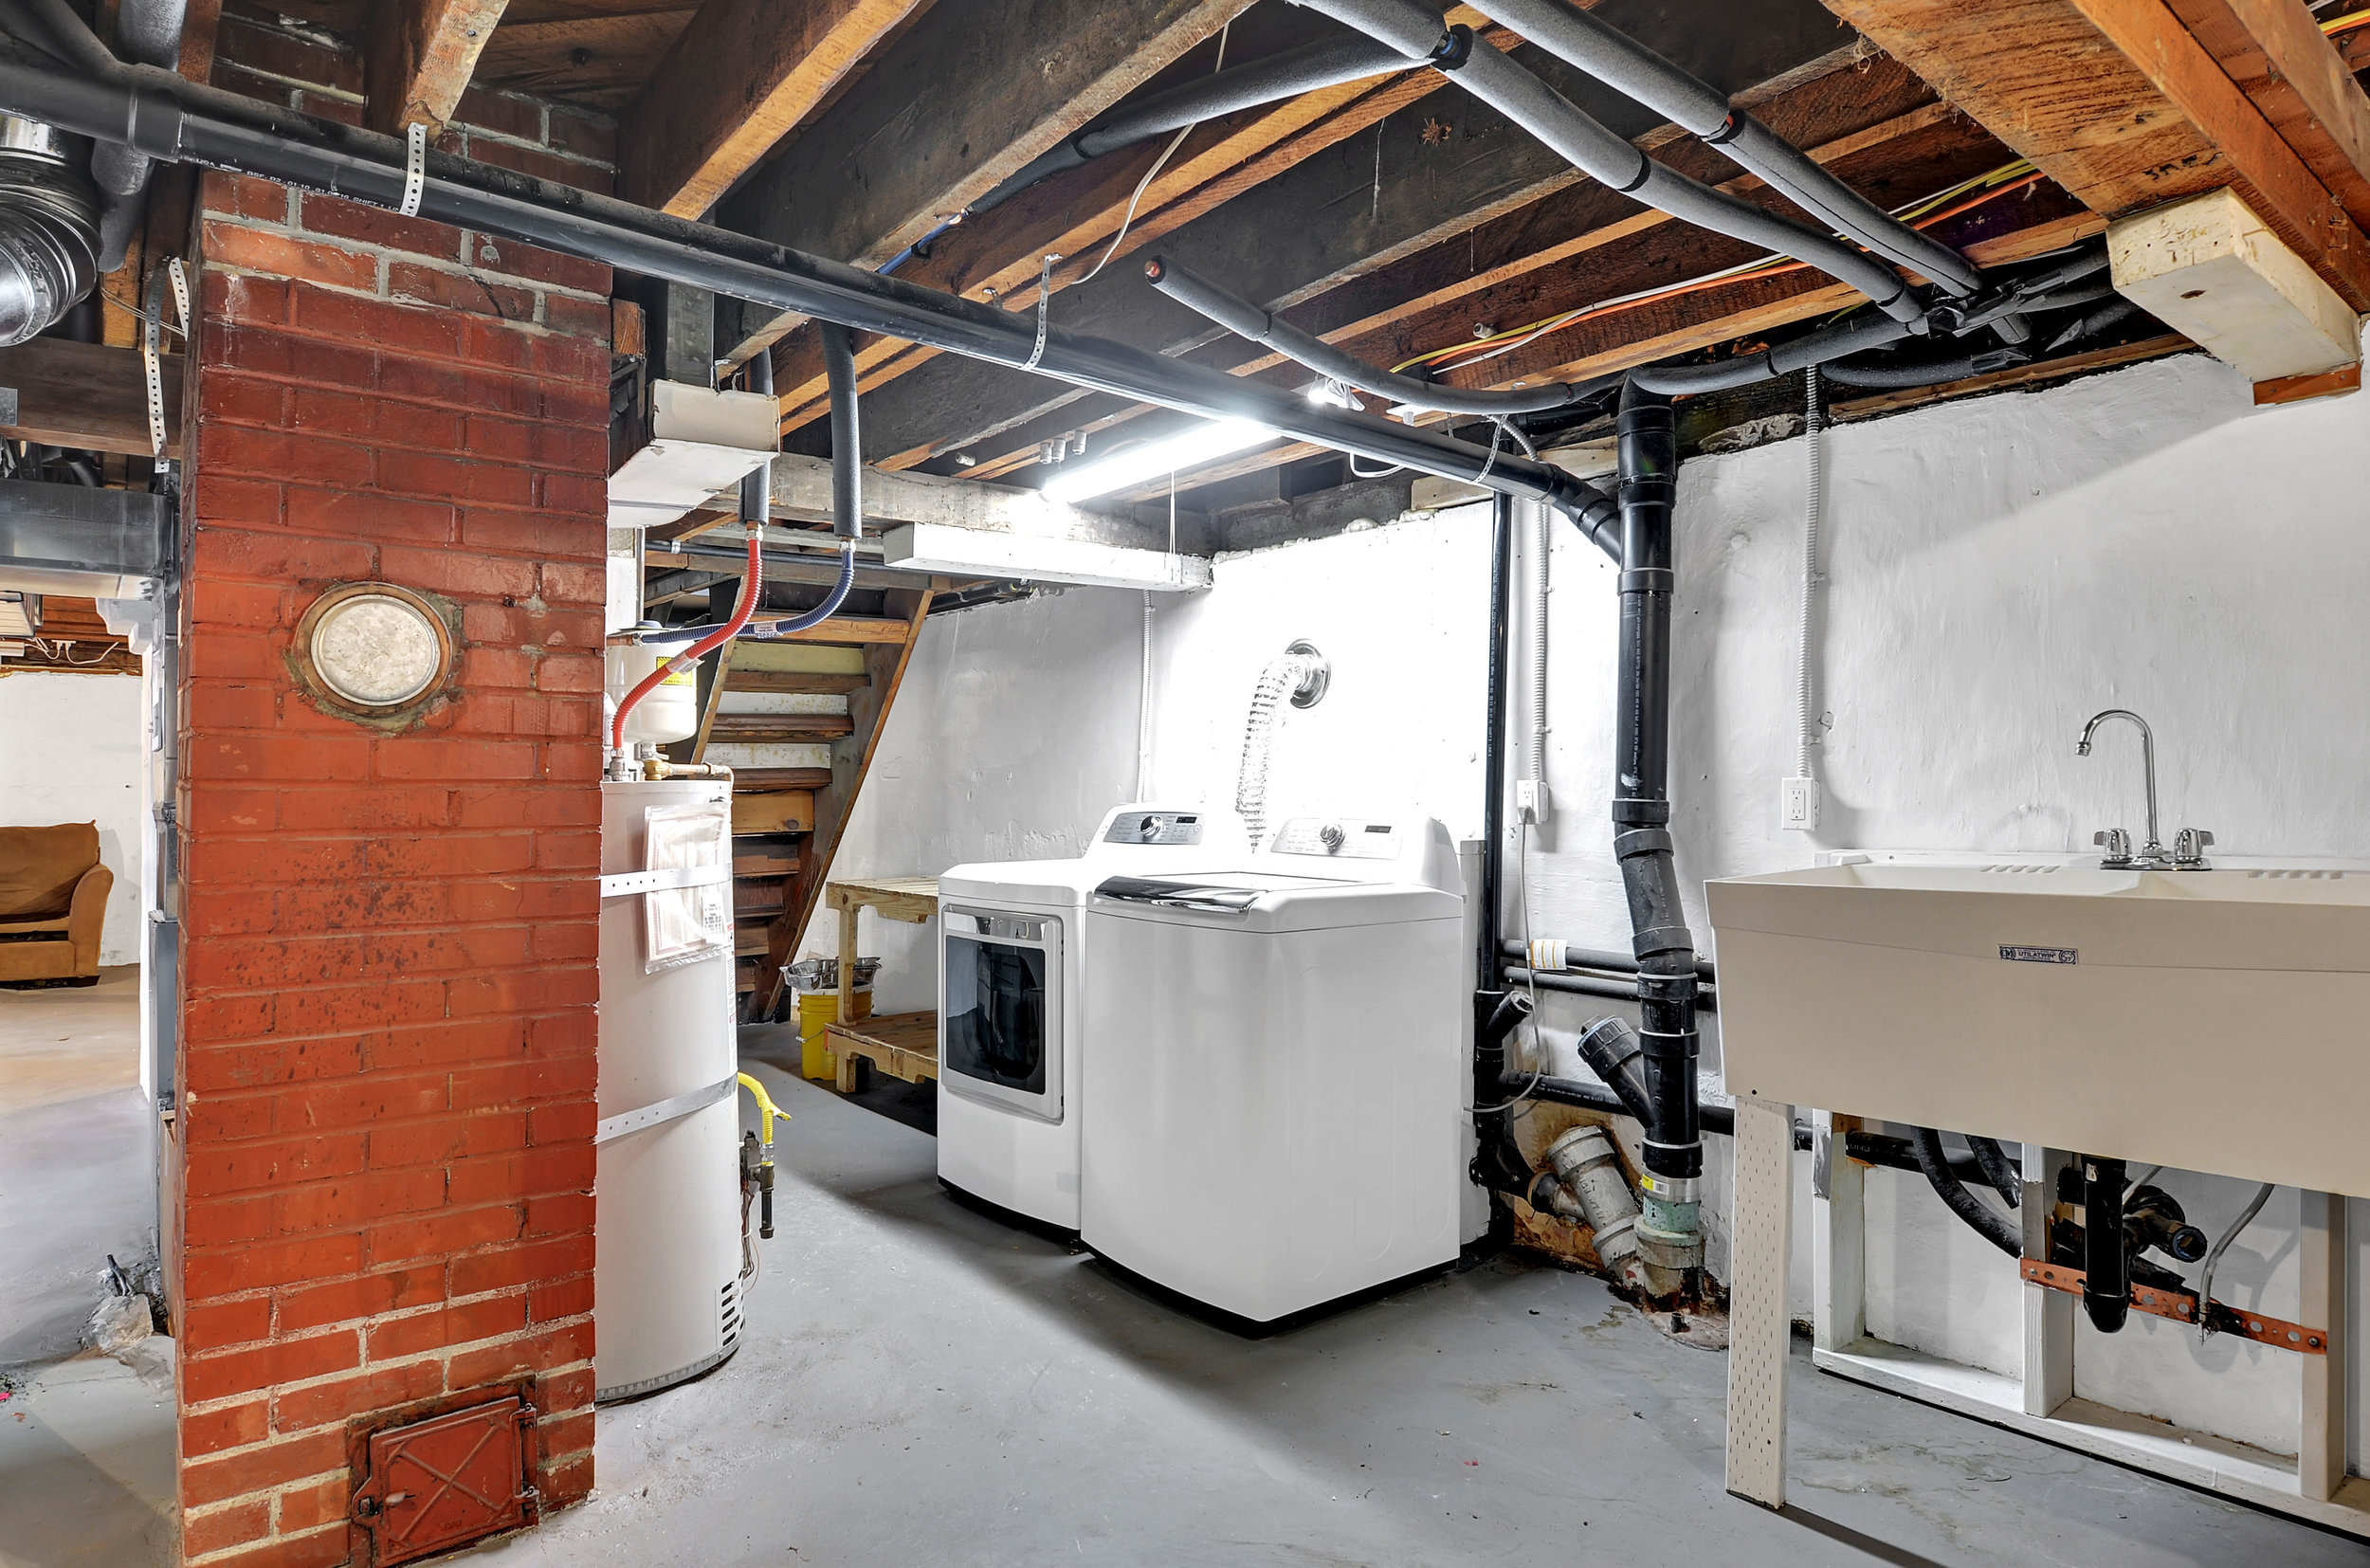 The laundry area is located in the basement with a large, practical utility sink beside.